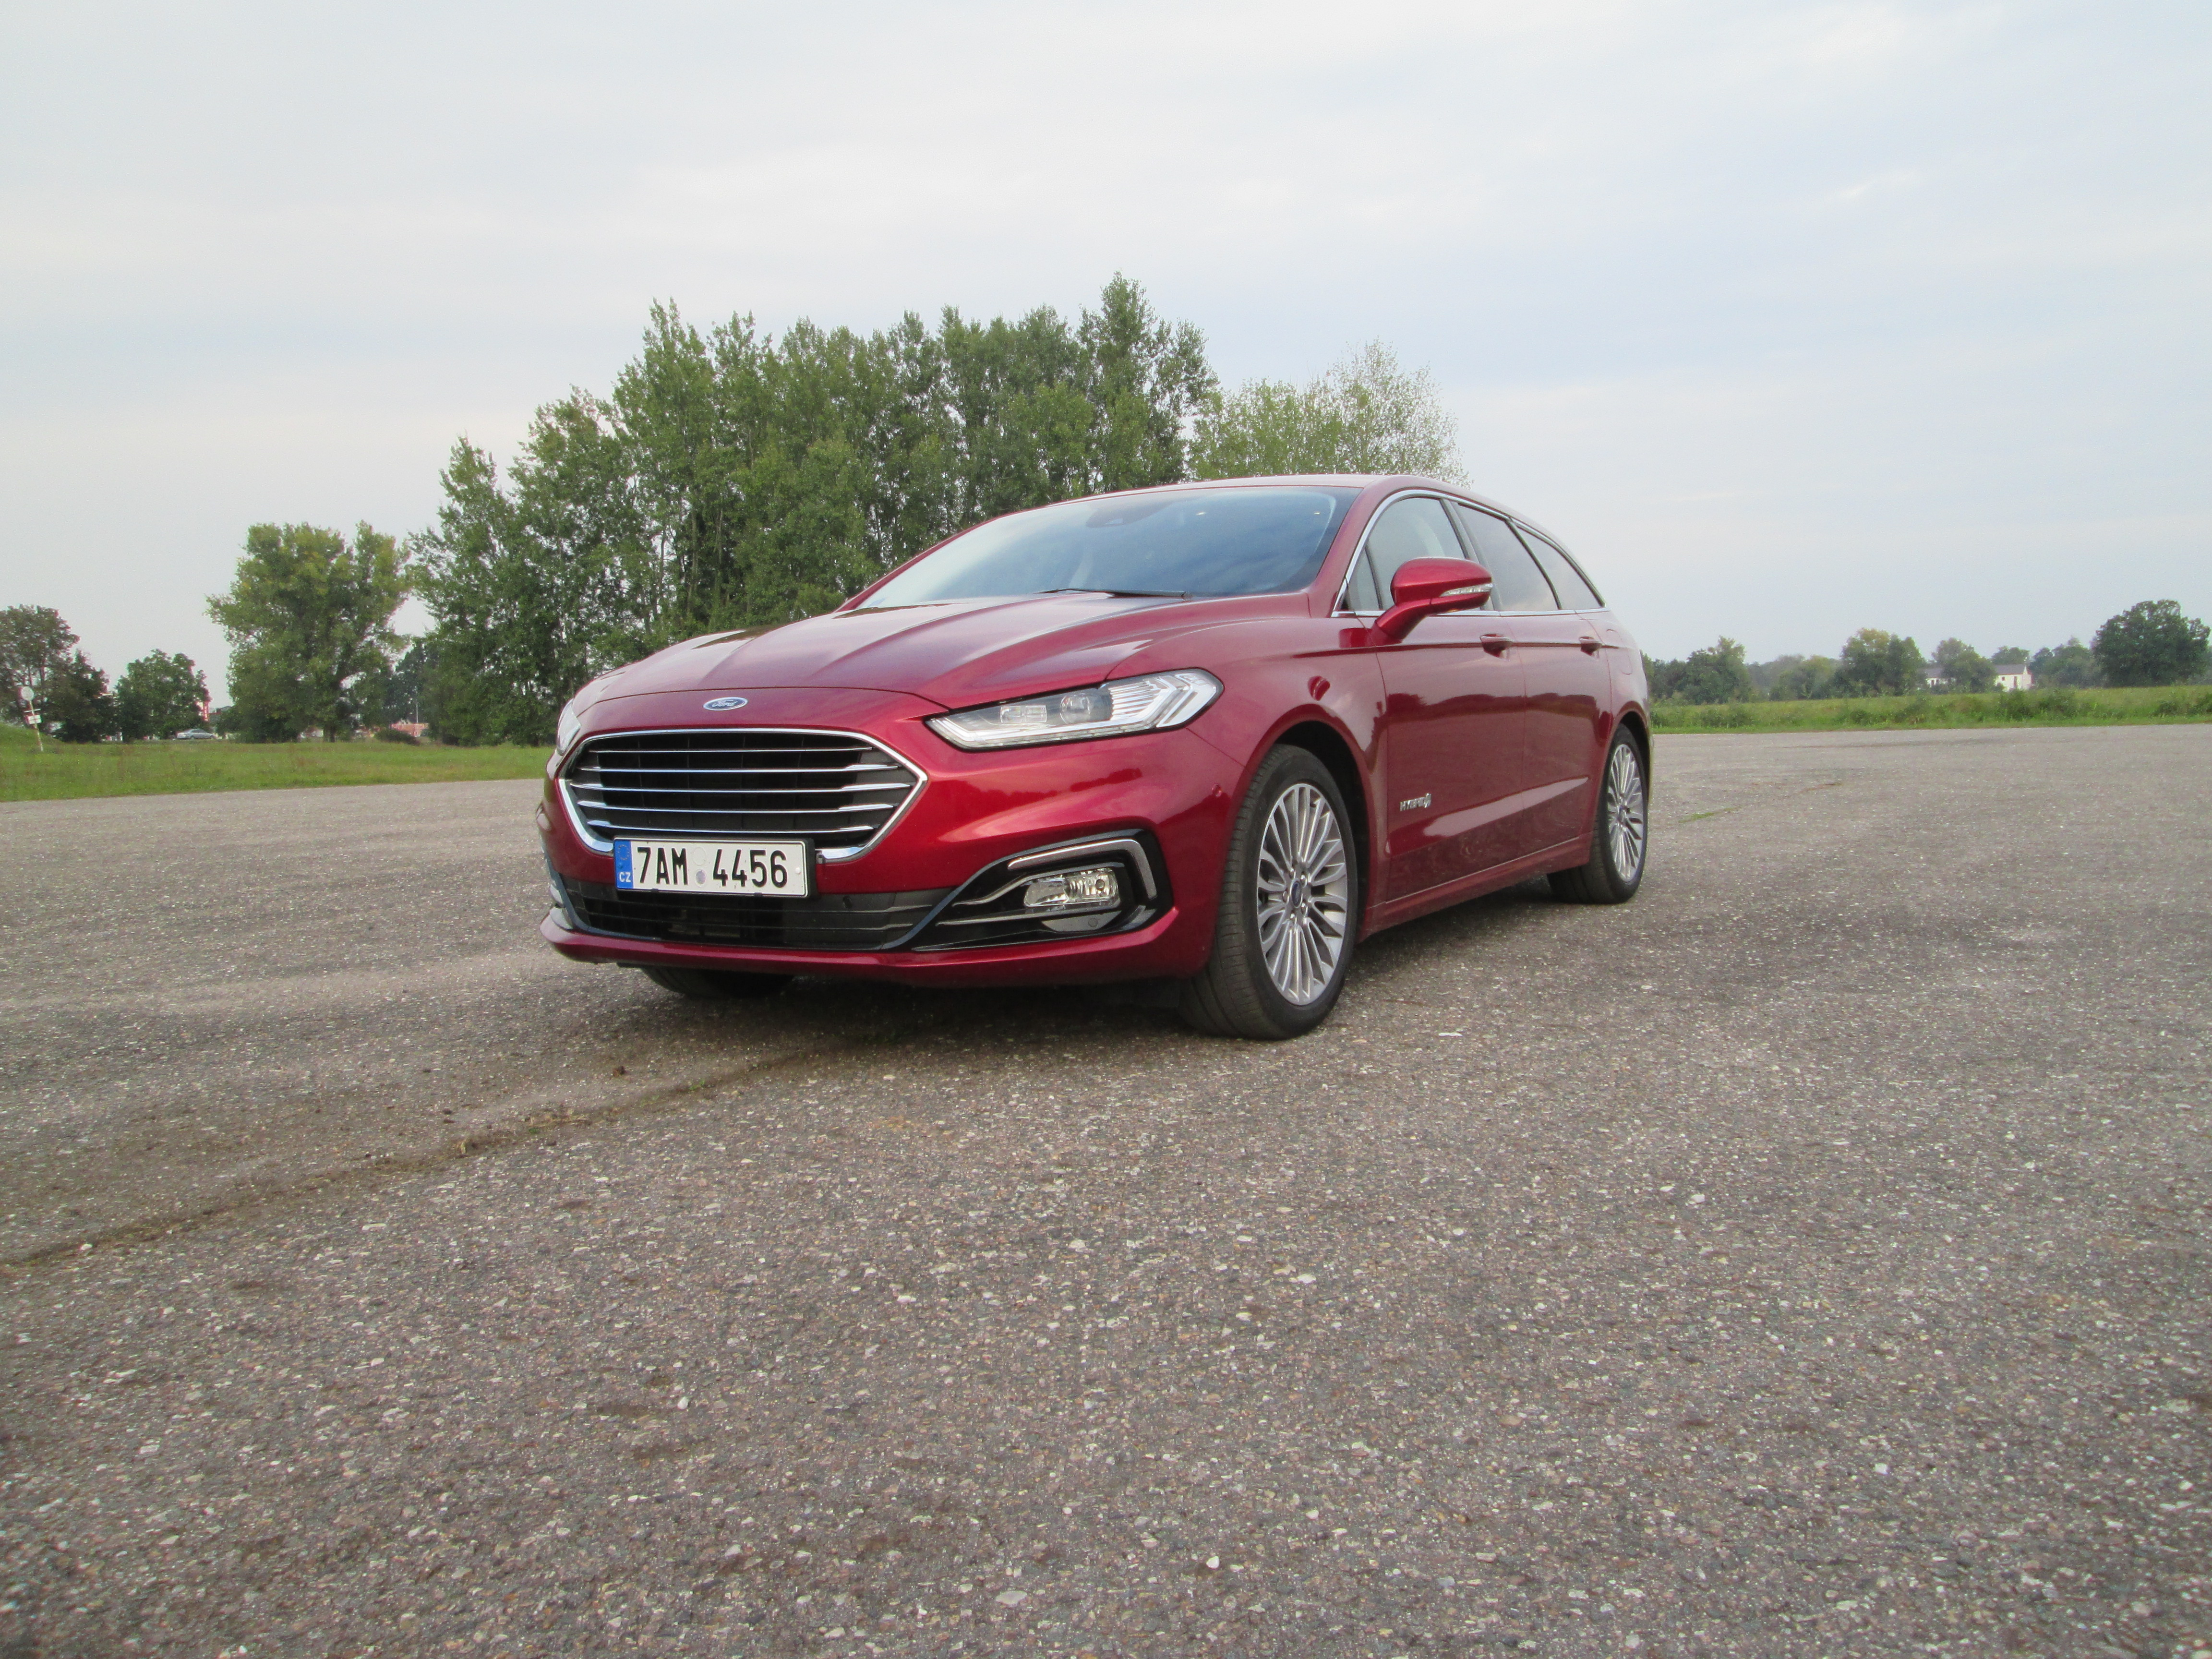 Ford Mondeo Wagon Hybrid reviews big